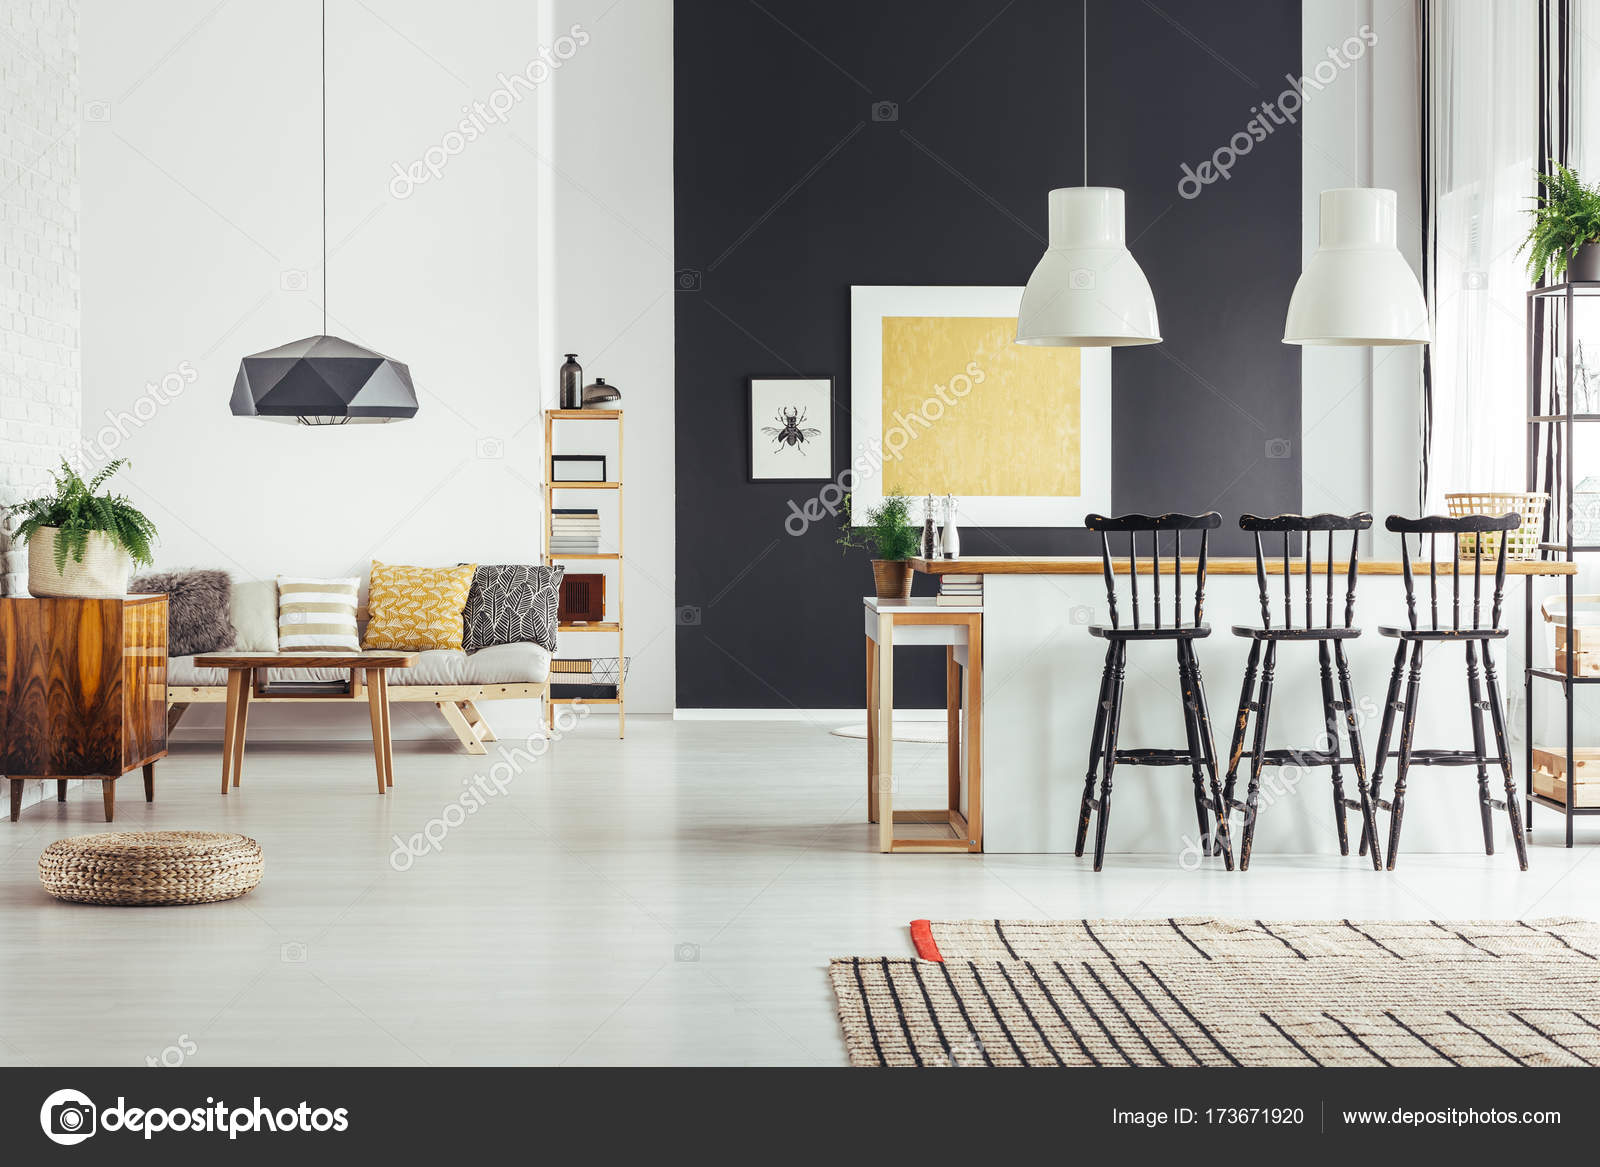 Cozy Living Room In Vintage Style With Rustic Bar Stools And Chic Black Lamp Photo By Photographeeeu